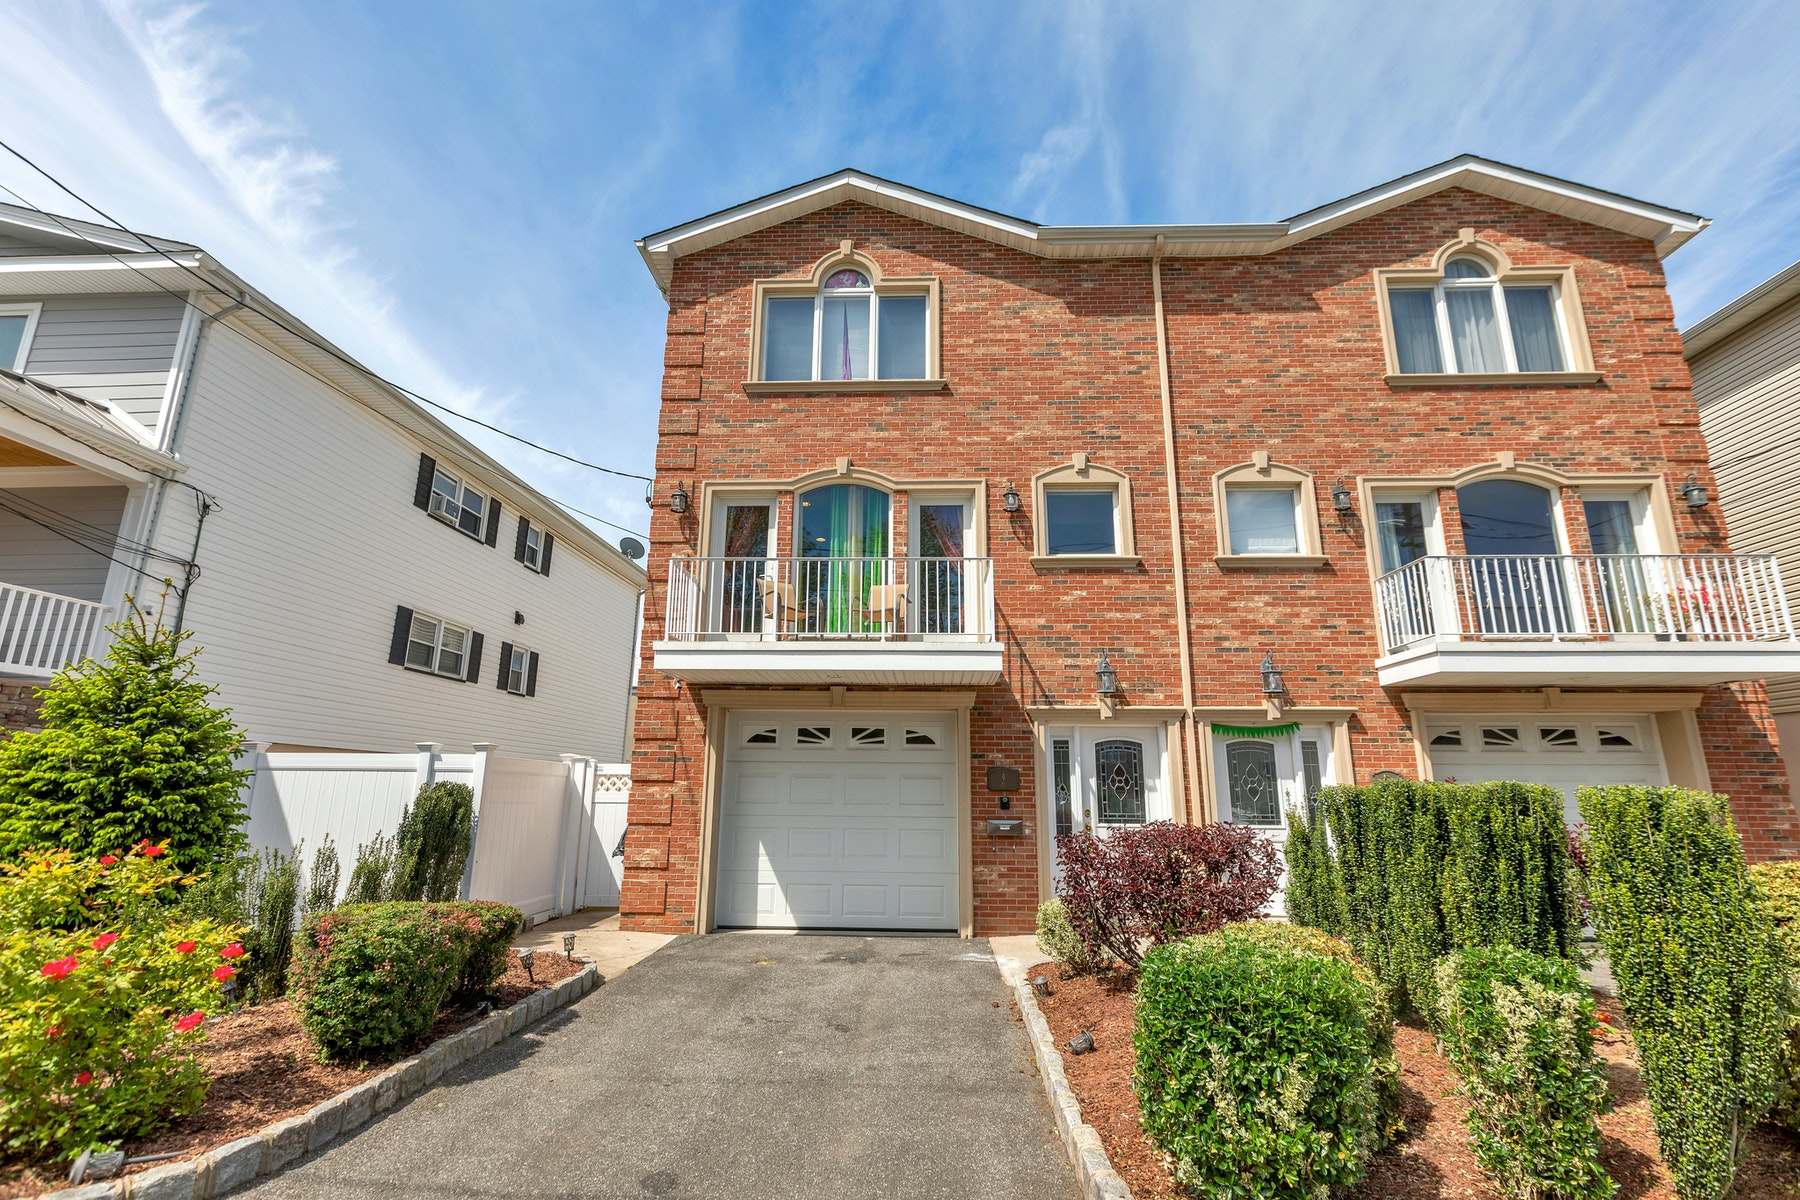 Single Family Homes for Sale at Seacaucus Commons 4 Kiesewetter Ln 1 Secaucus, New Jersey 07094 United States